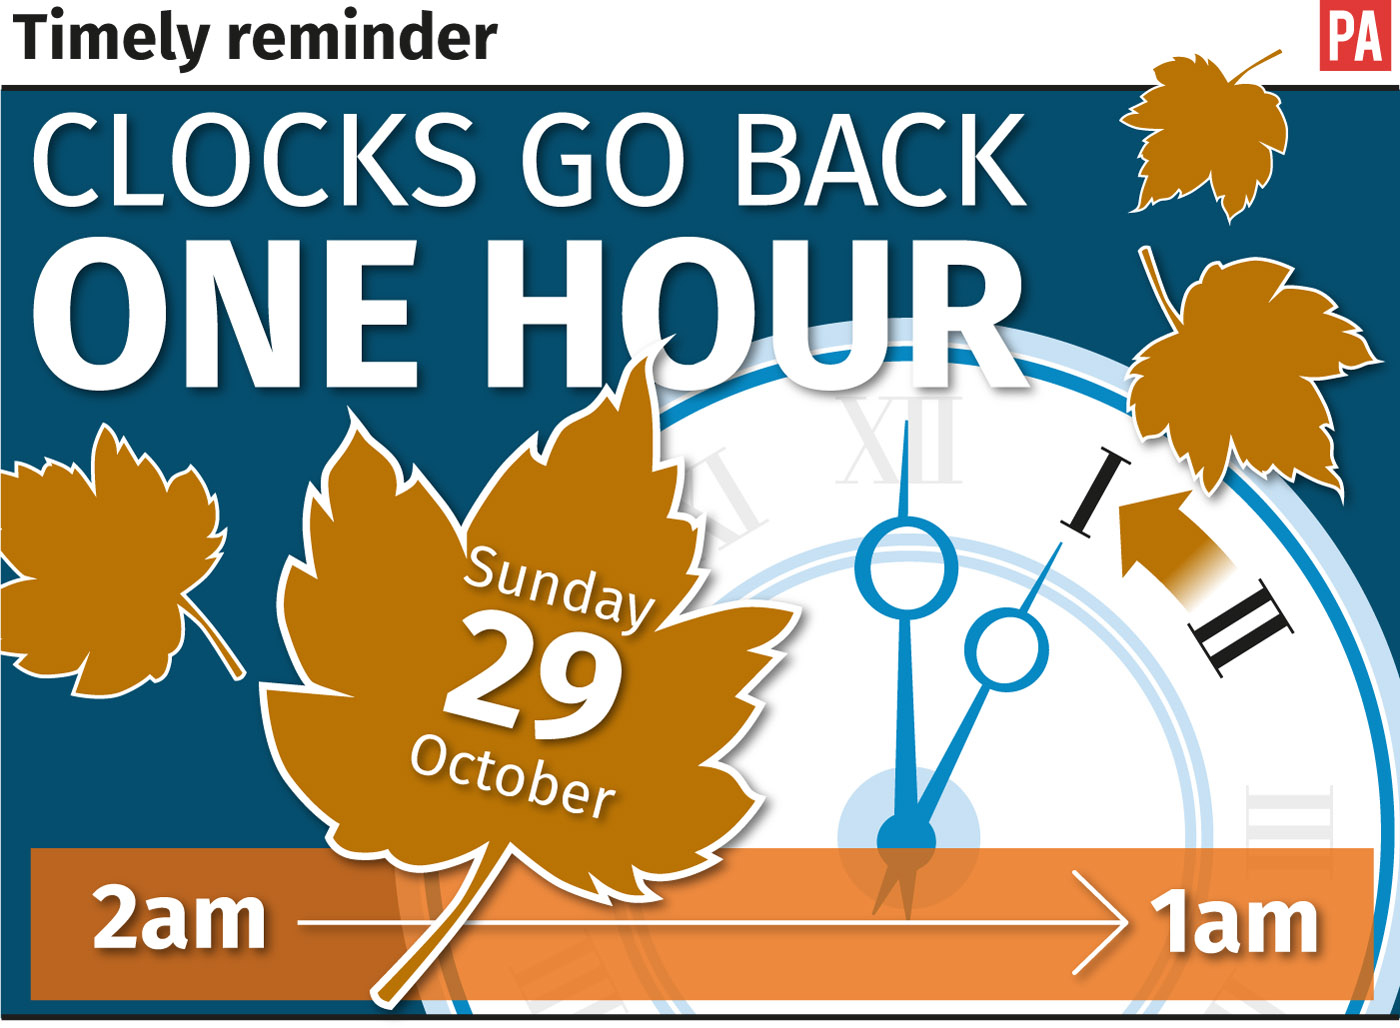 Image Result For The Benefits Of Having An Extra Hour In Bed As The Clocks Go Back